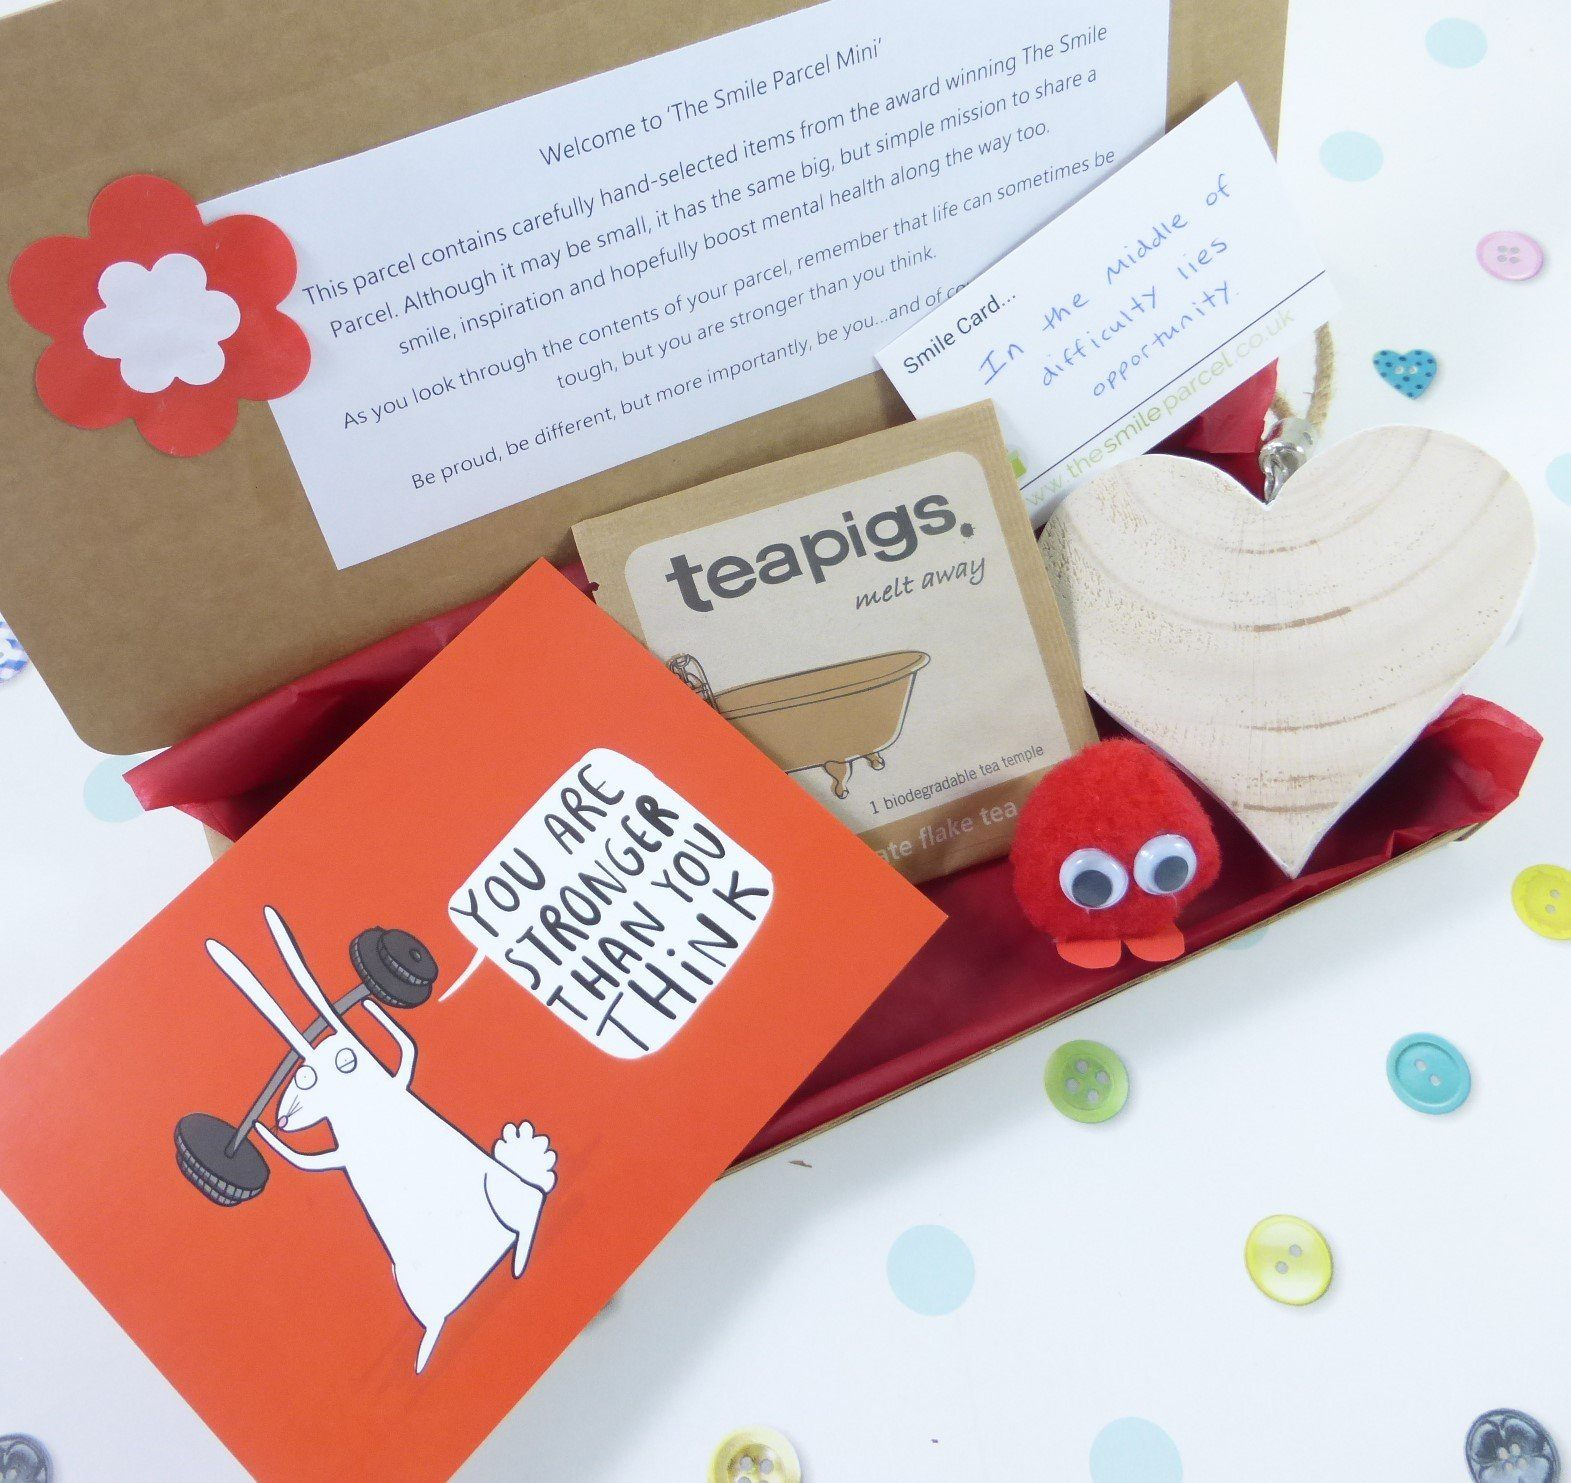 Red Letterbox Friendly, Pick Me Up Gift, The Smile Parcel Mini, Self Care Box, Mental Health Gift, Wellbeing Box Kind Shop